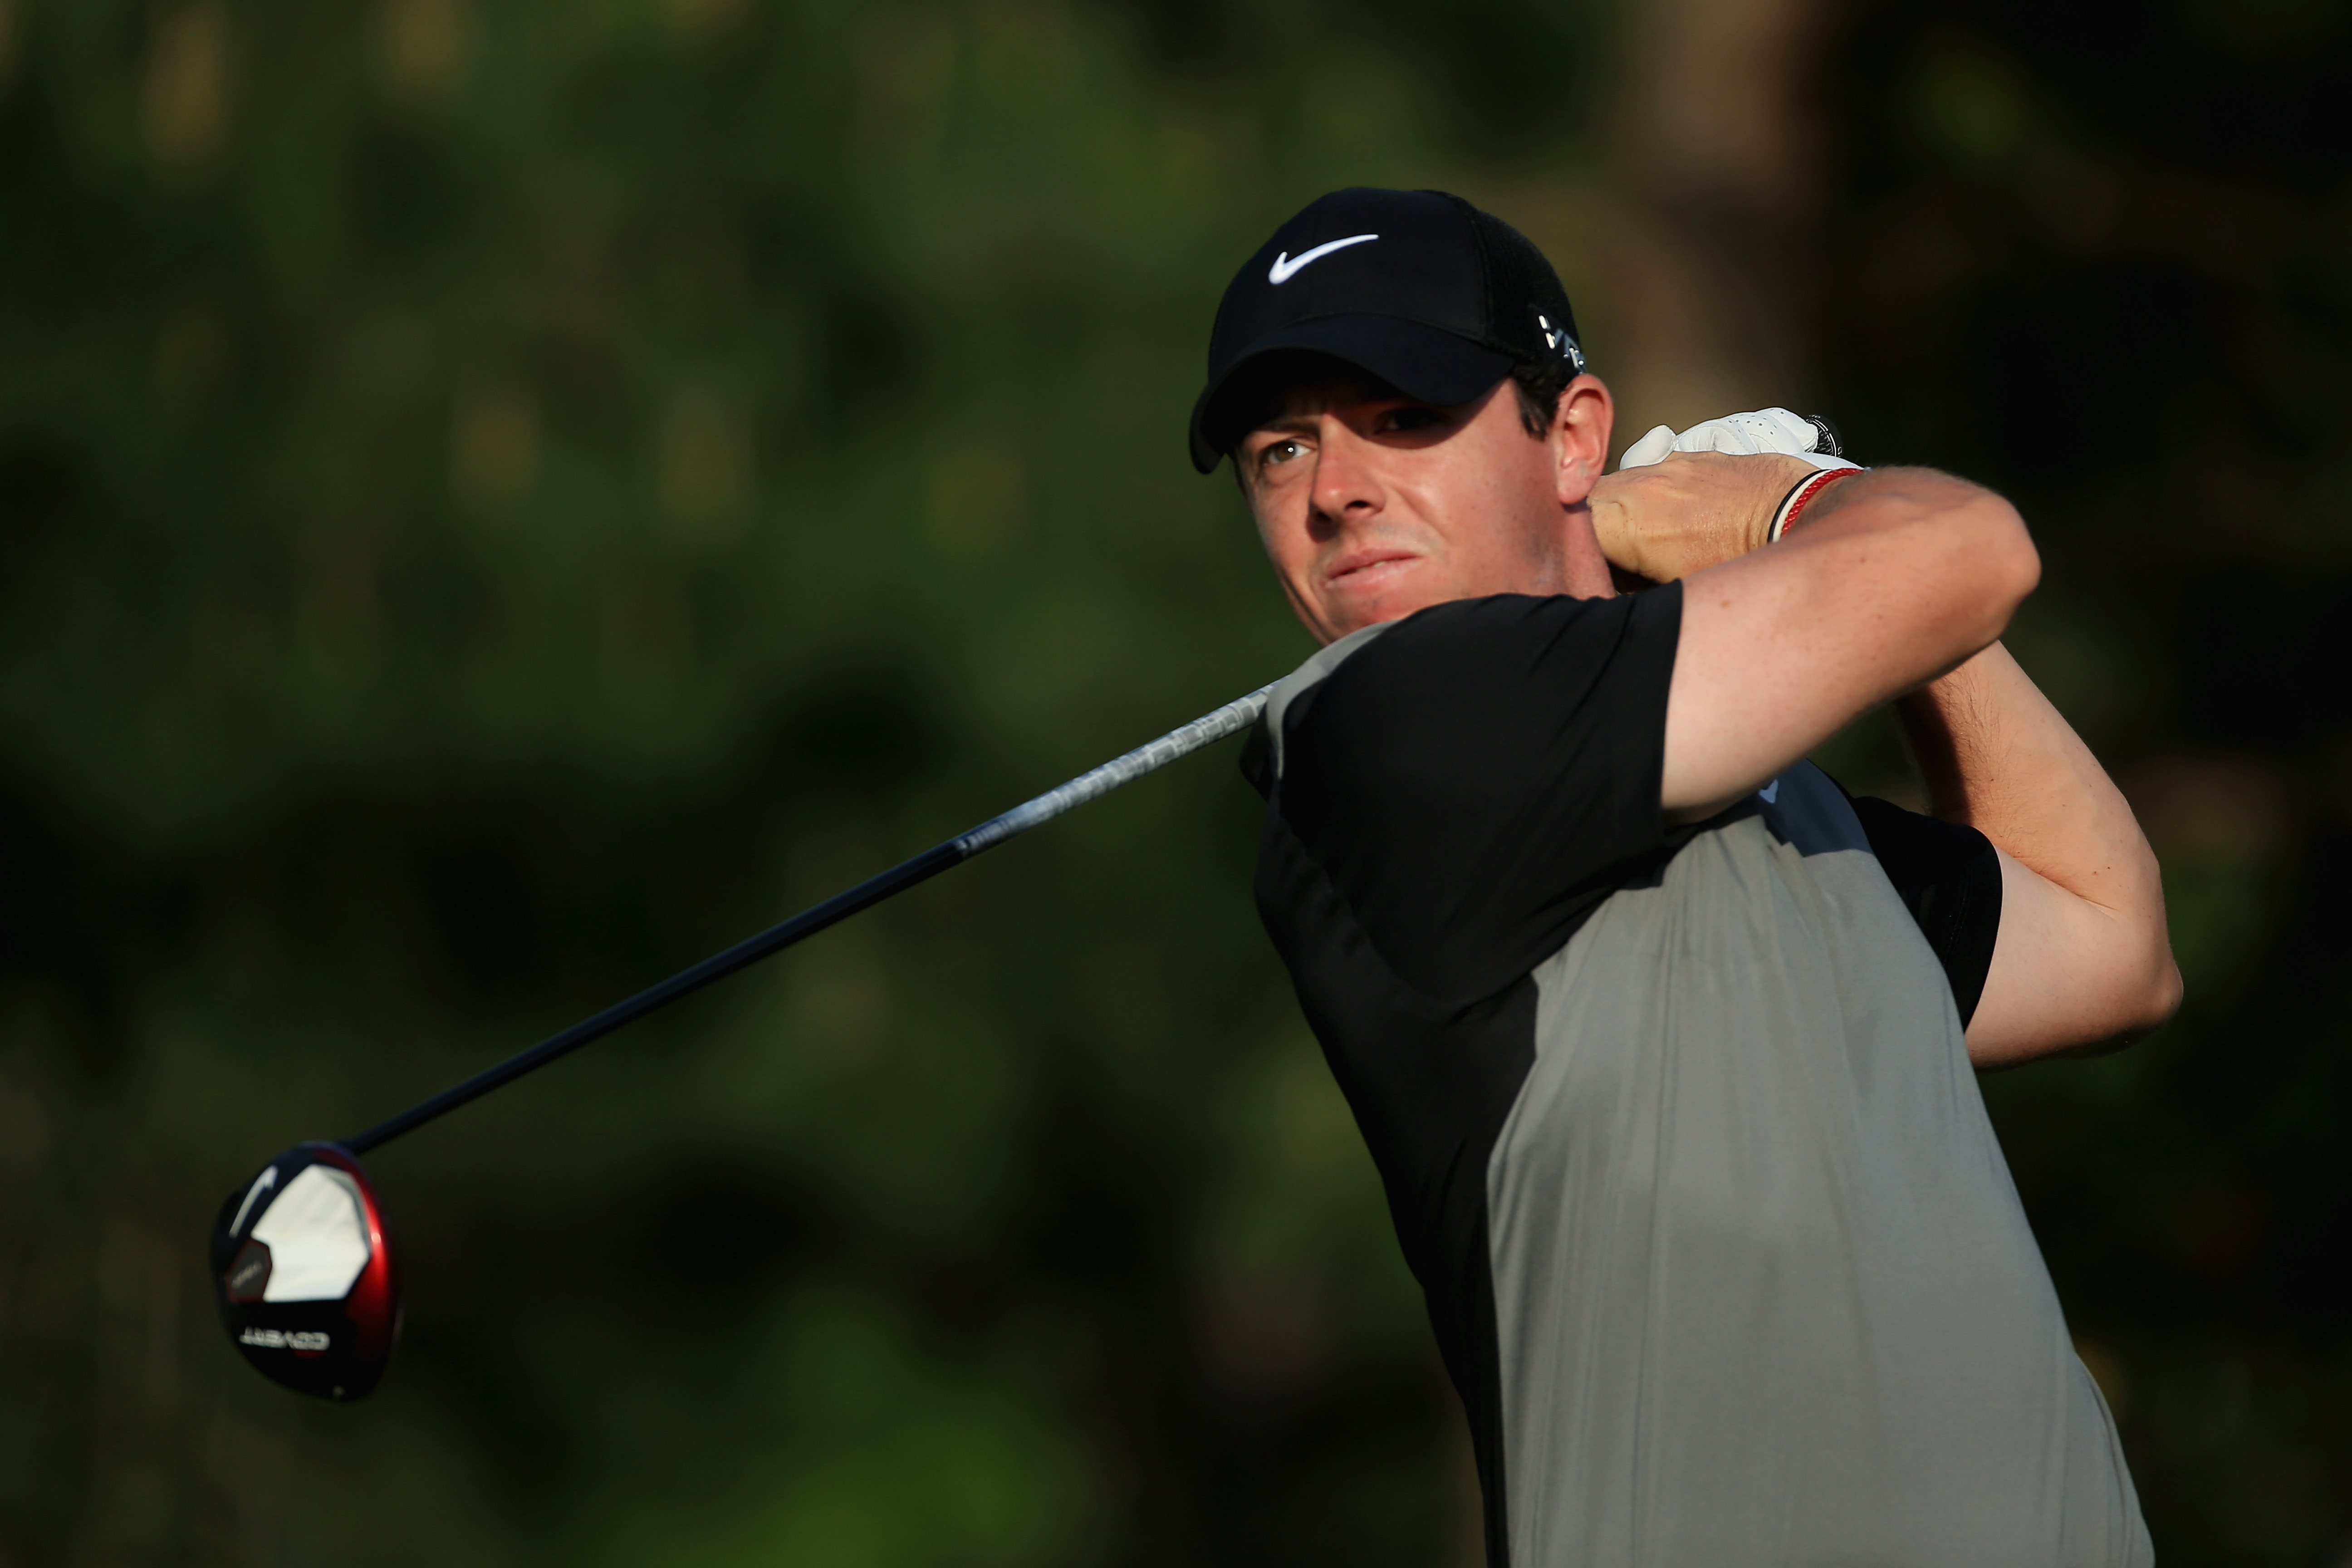 Rory McIlroy is among a host of big names set to play in this weekend's Memorial Tournament in Dublin, Ohio.